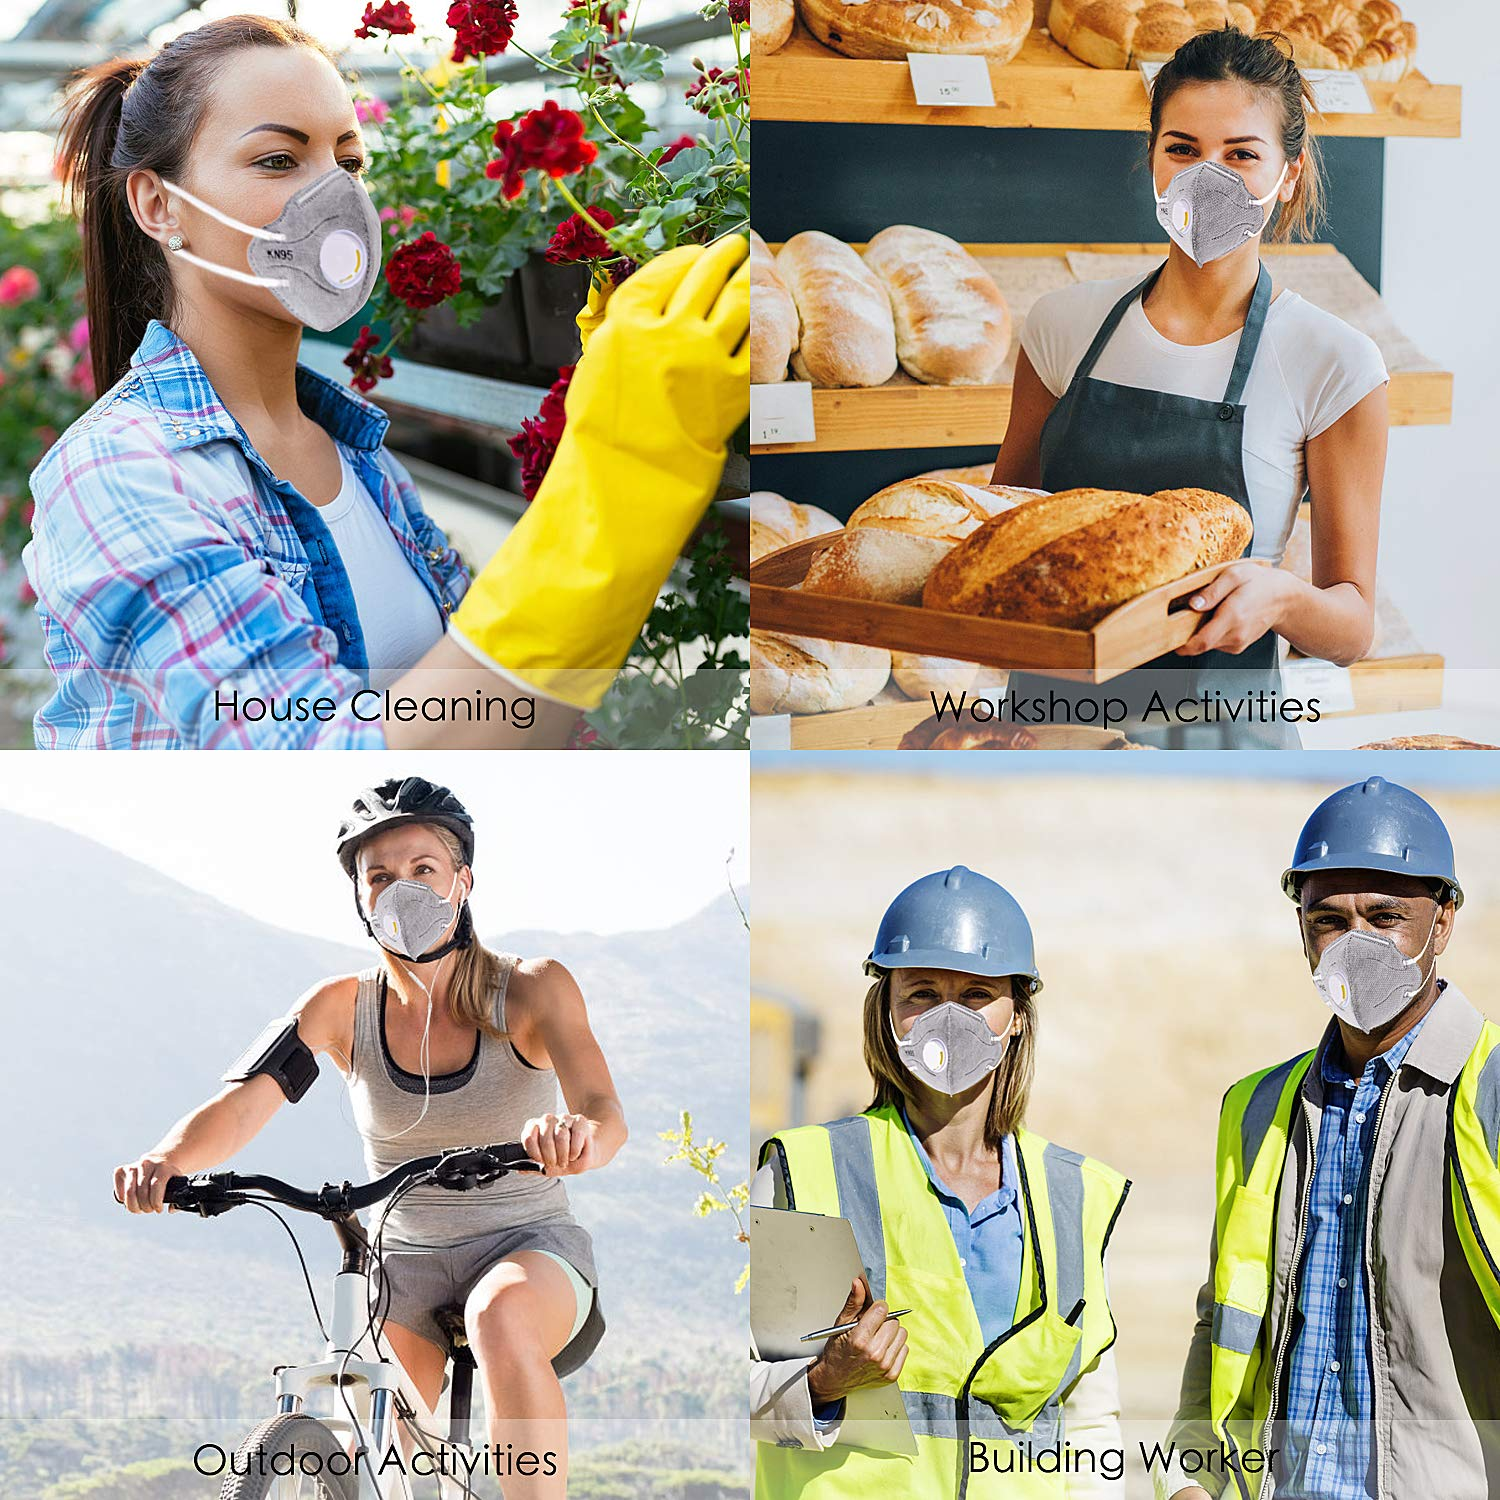 Dust Masks Disposable Anti Pollution Mask, N95 Particulate Respirator, safety mask with Exhalation Valve 5 Layer Activated Carbon Air Filter,Anti-Dust, Smoke, Gas, Allergies, Germs and Flu (20 Pack) by HiYuToy (Image #7)